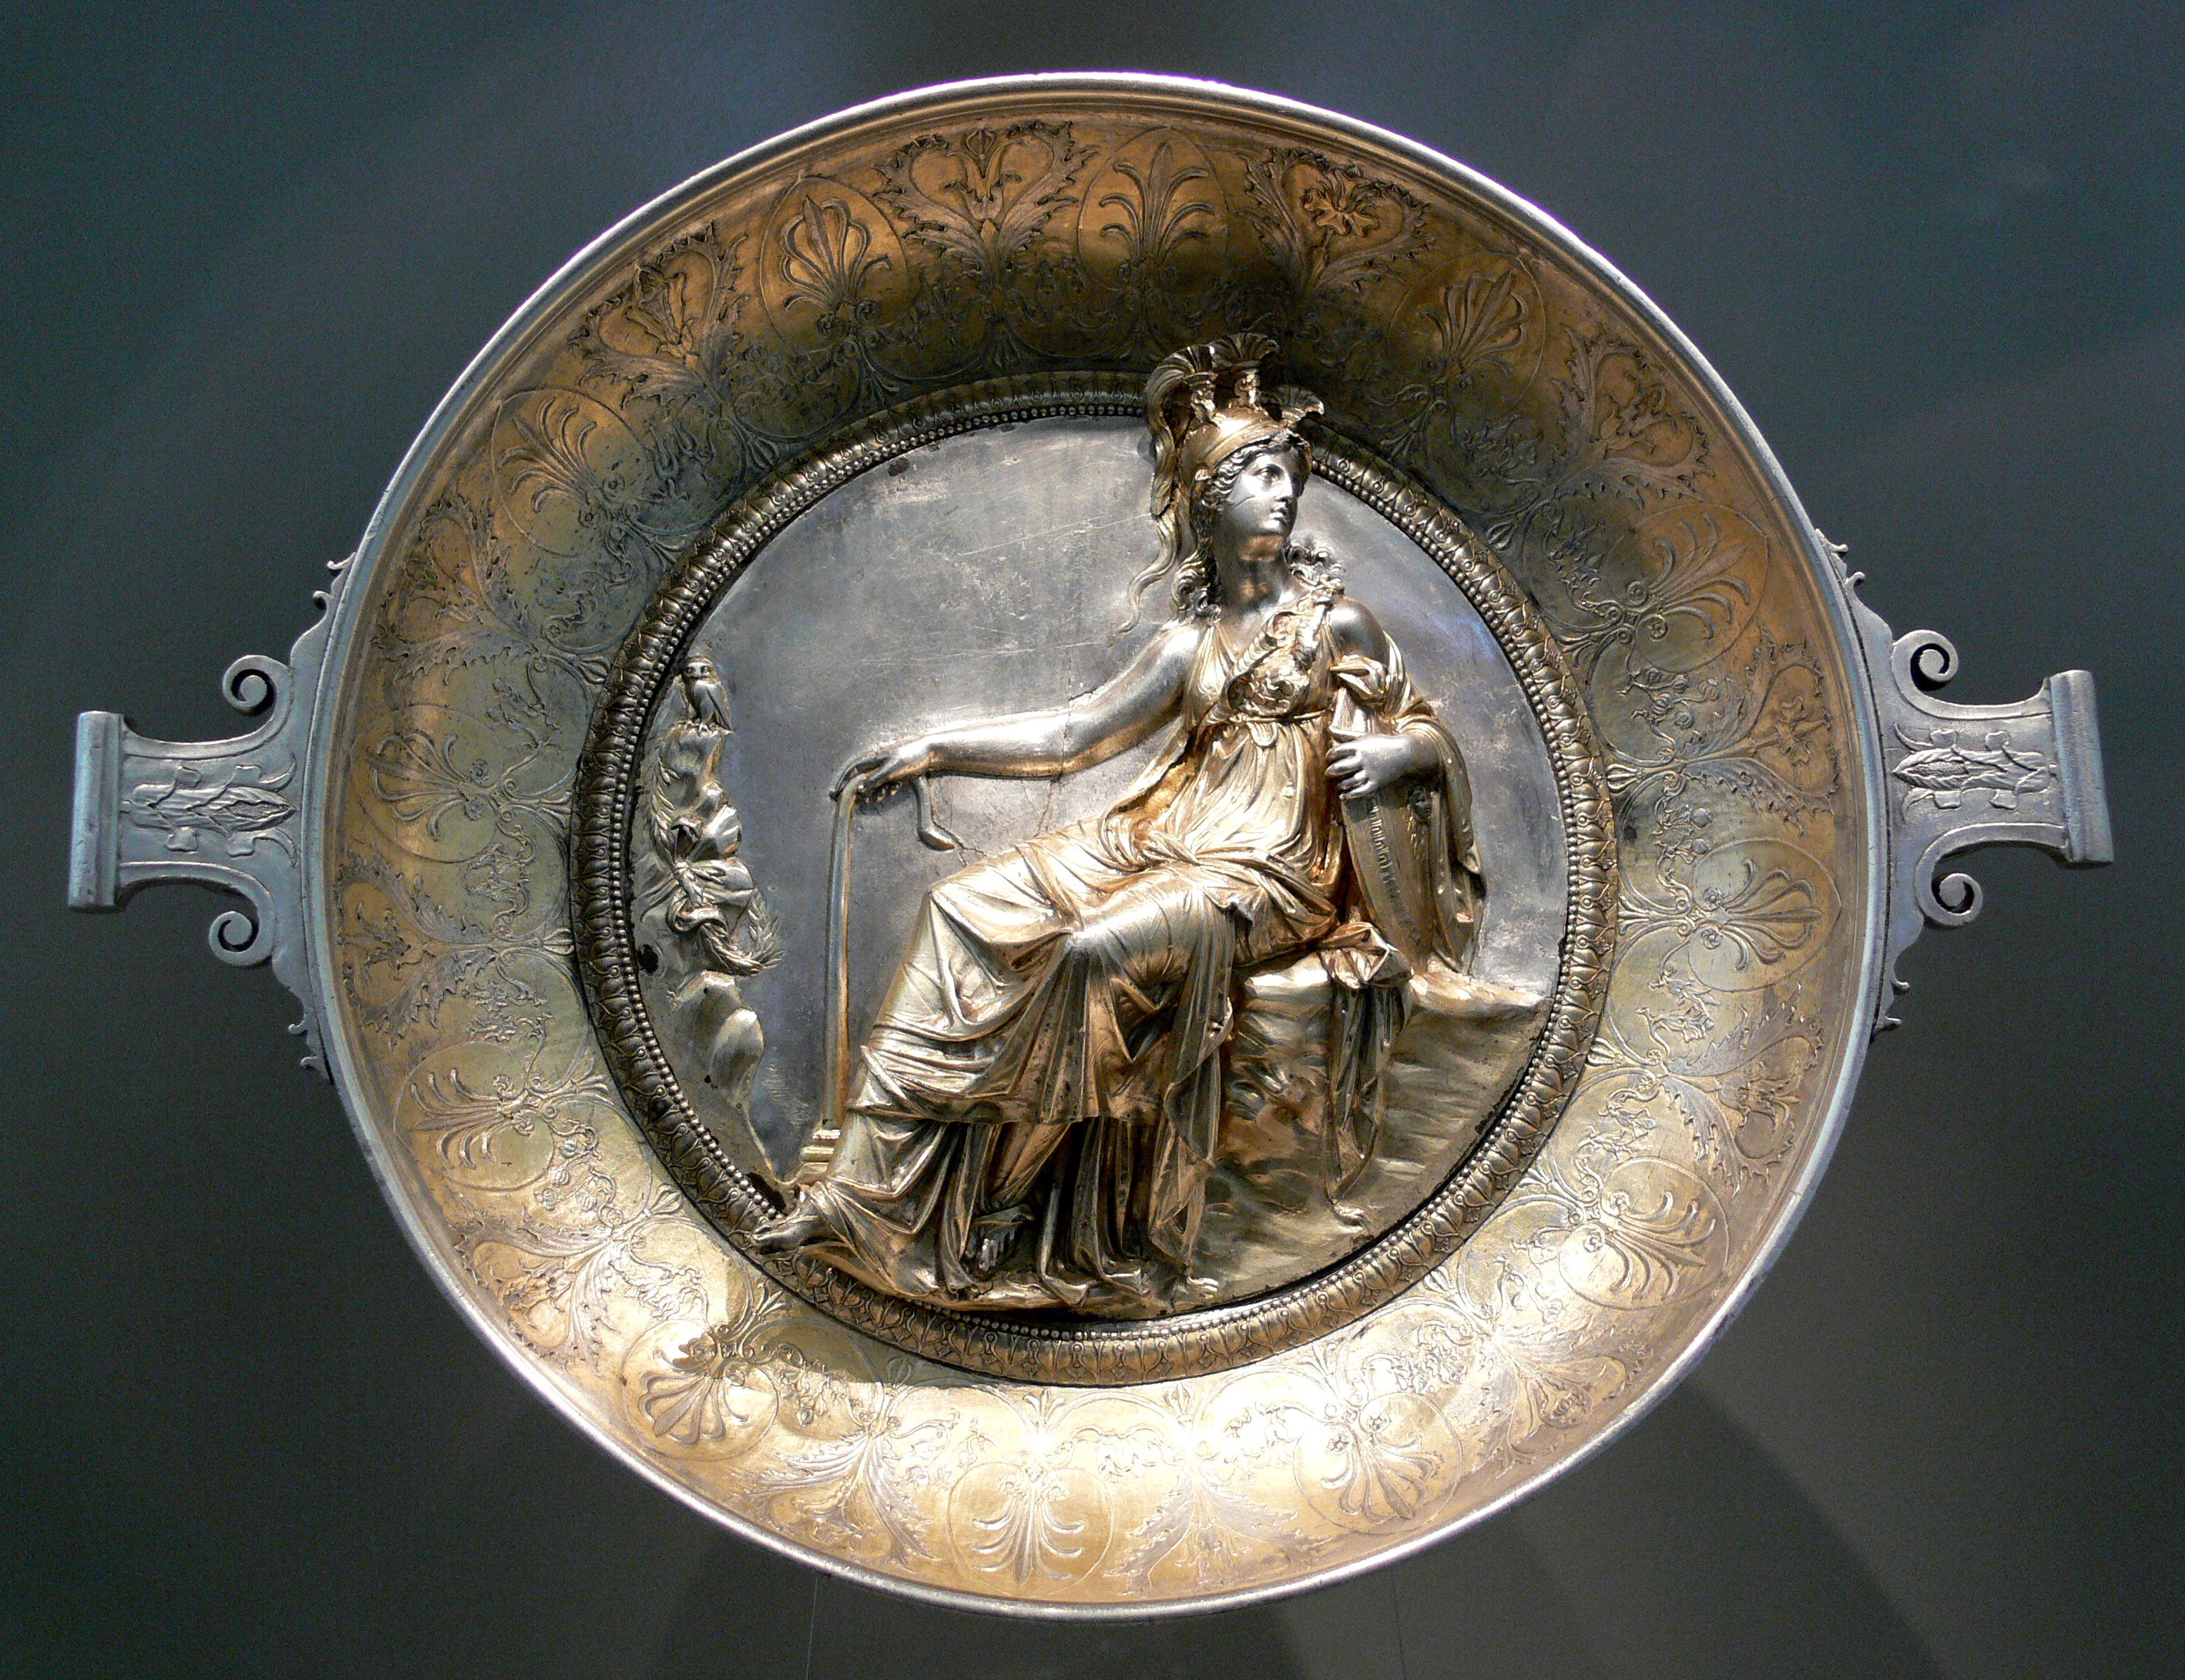 Silver cup with Athena seated from the Hildesheim